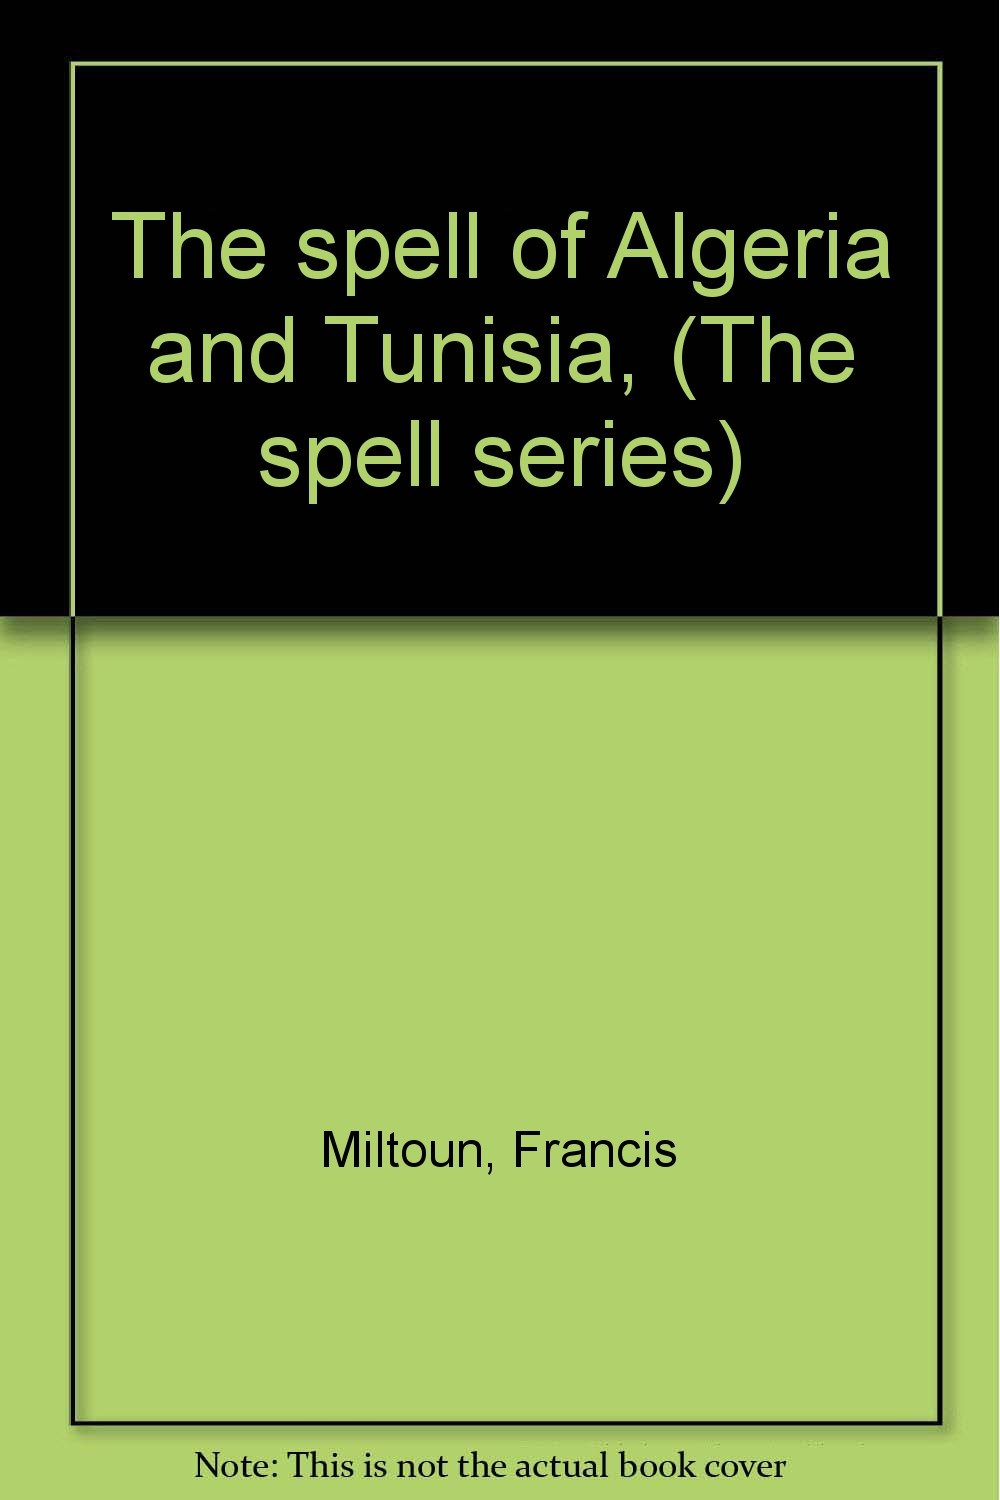 The spell of Algeria and Tunisia, (The spell series)